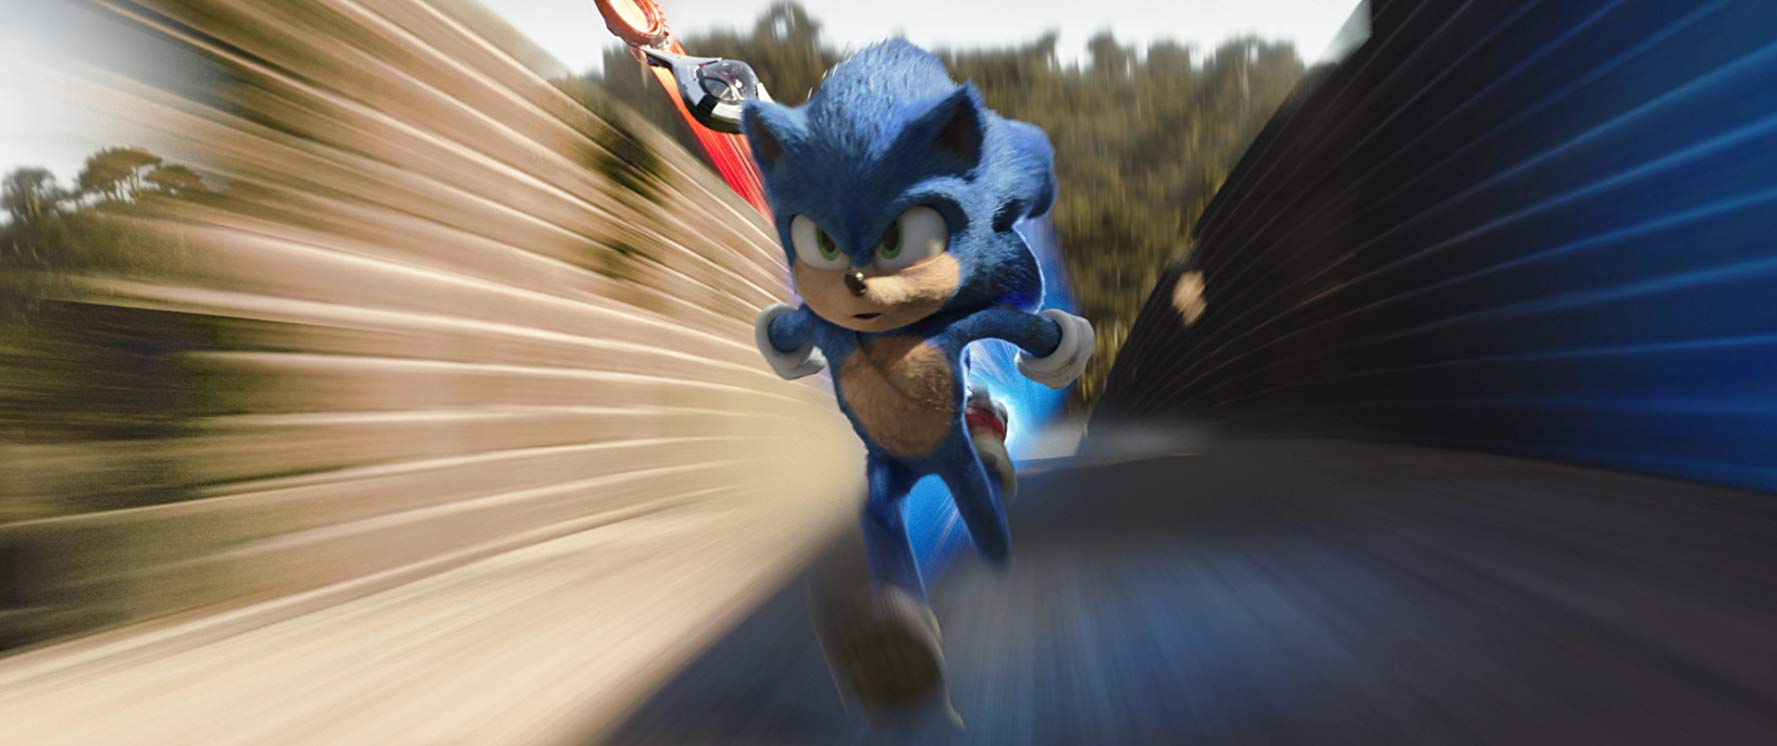 Is The Sonic The Hedgehog Movie Any Good Here S What The Reviews Say Digg